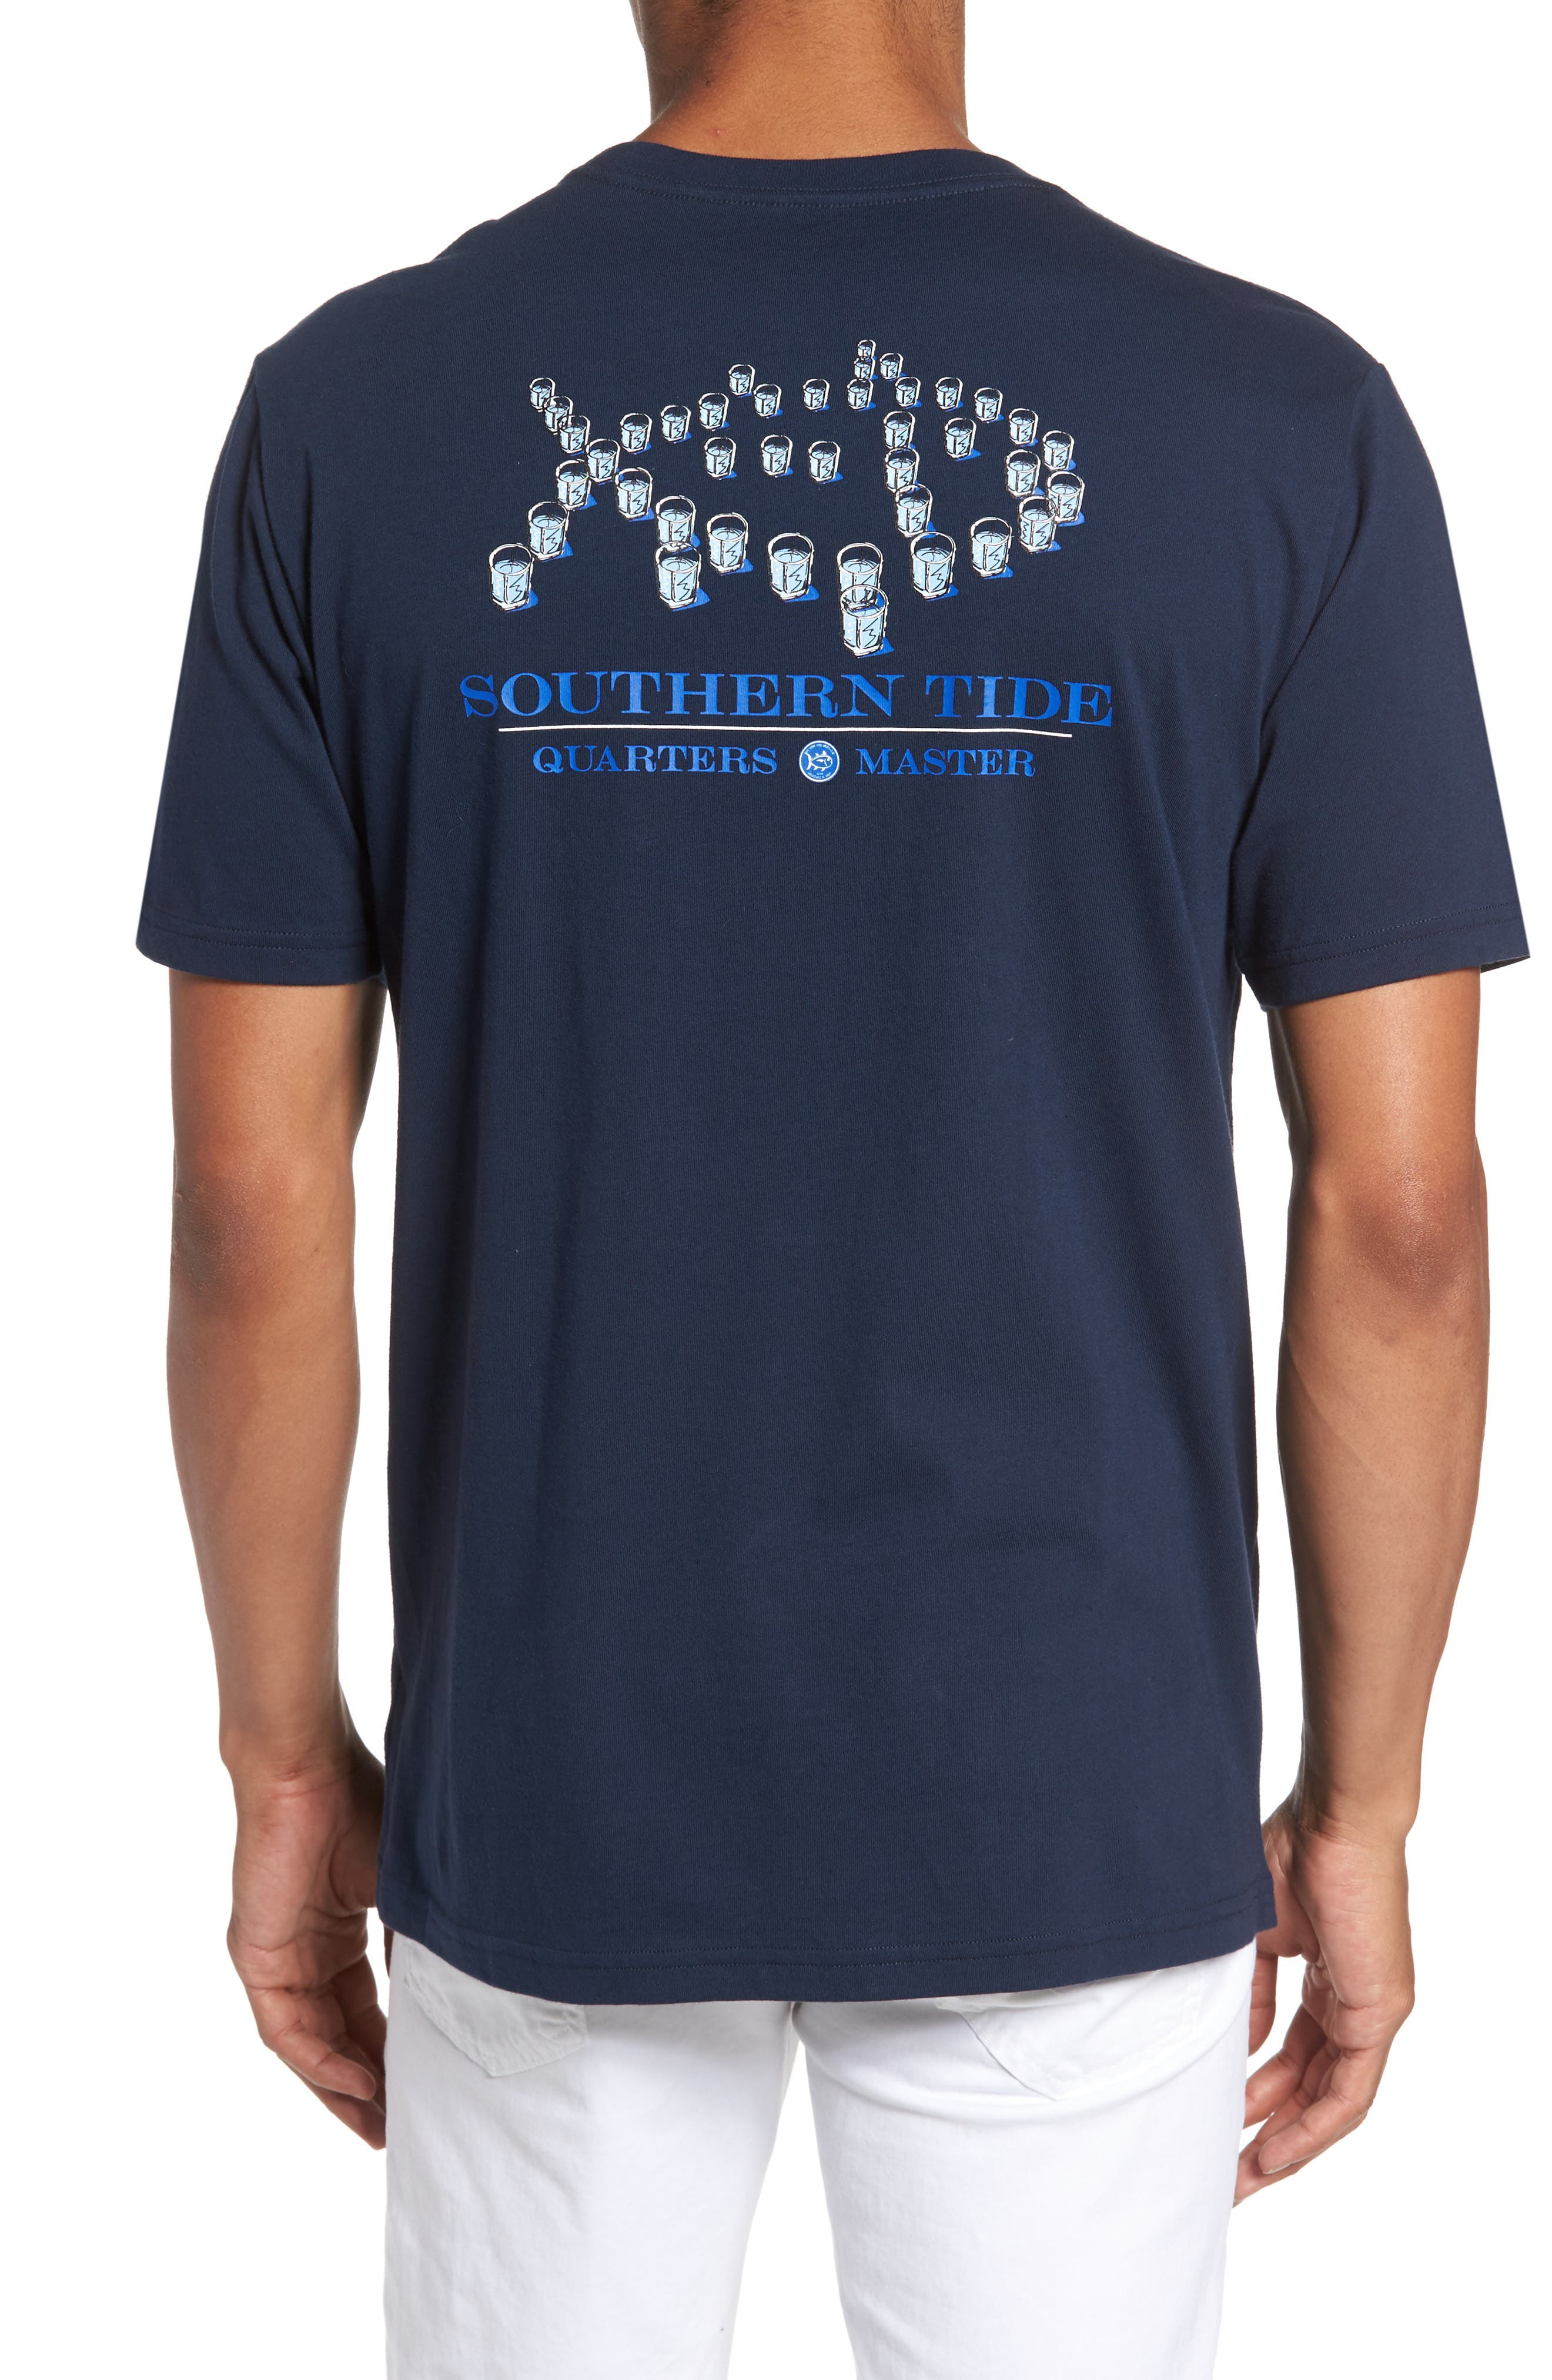 Alternate Image 2  - Southern Tide Classic Fit Quarters Master T-Shirt